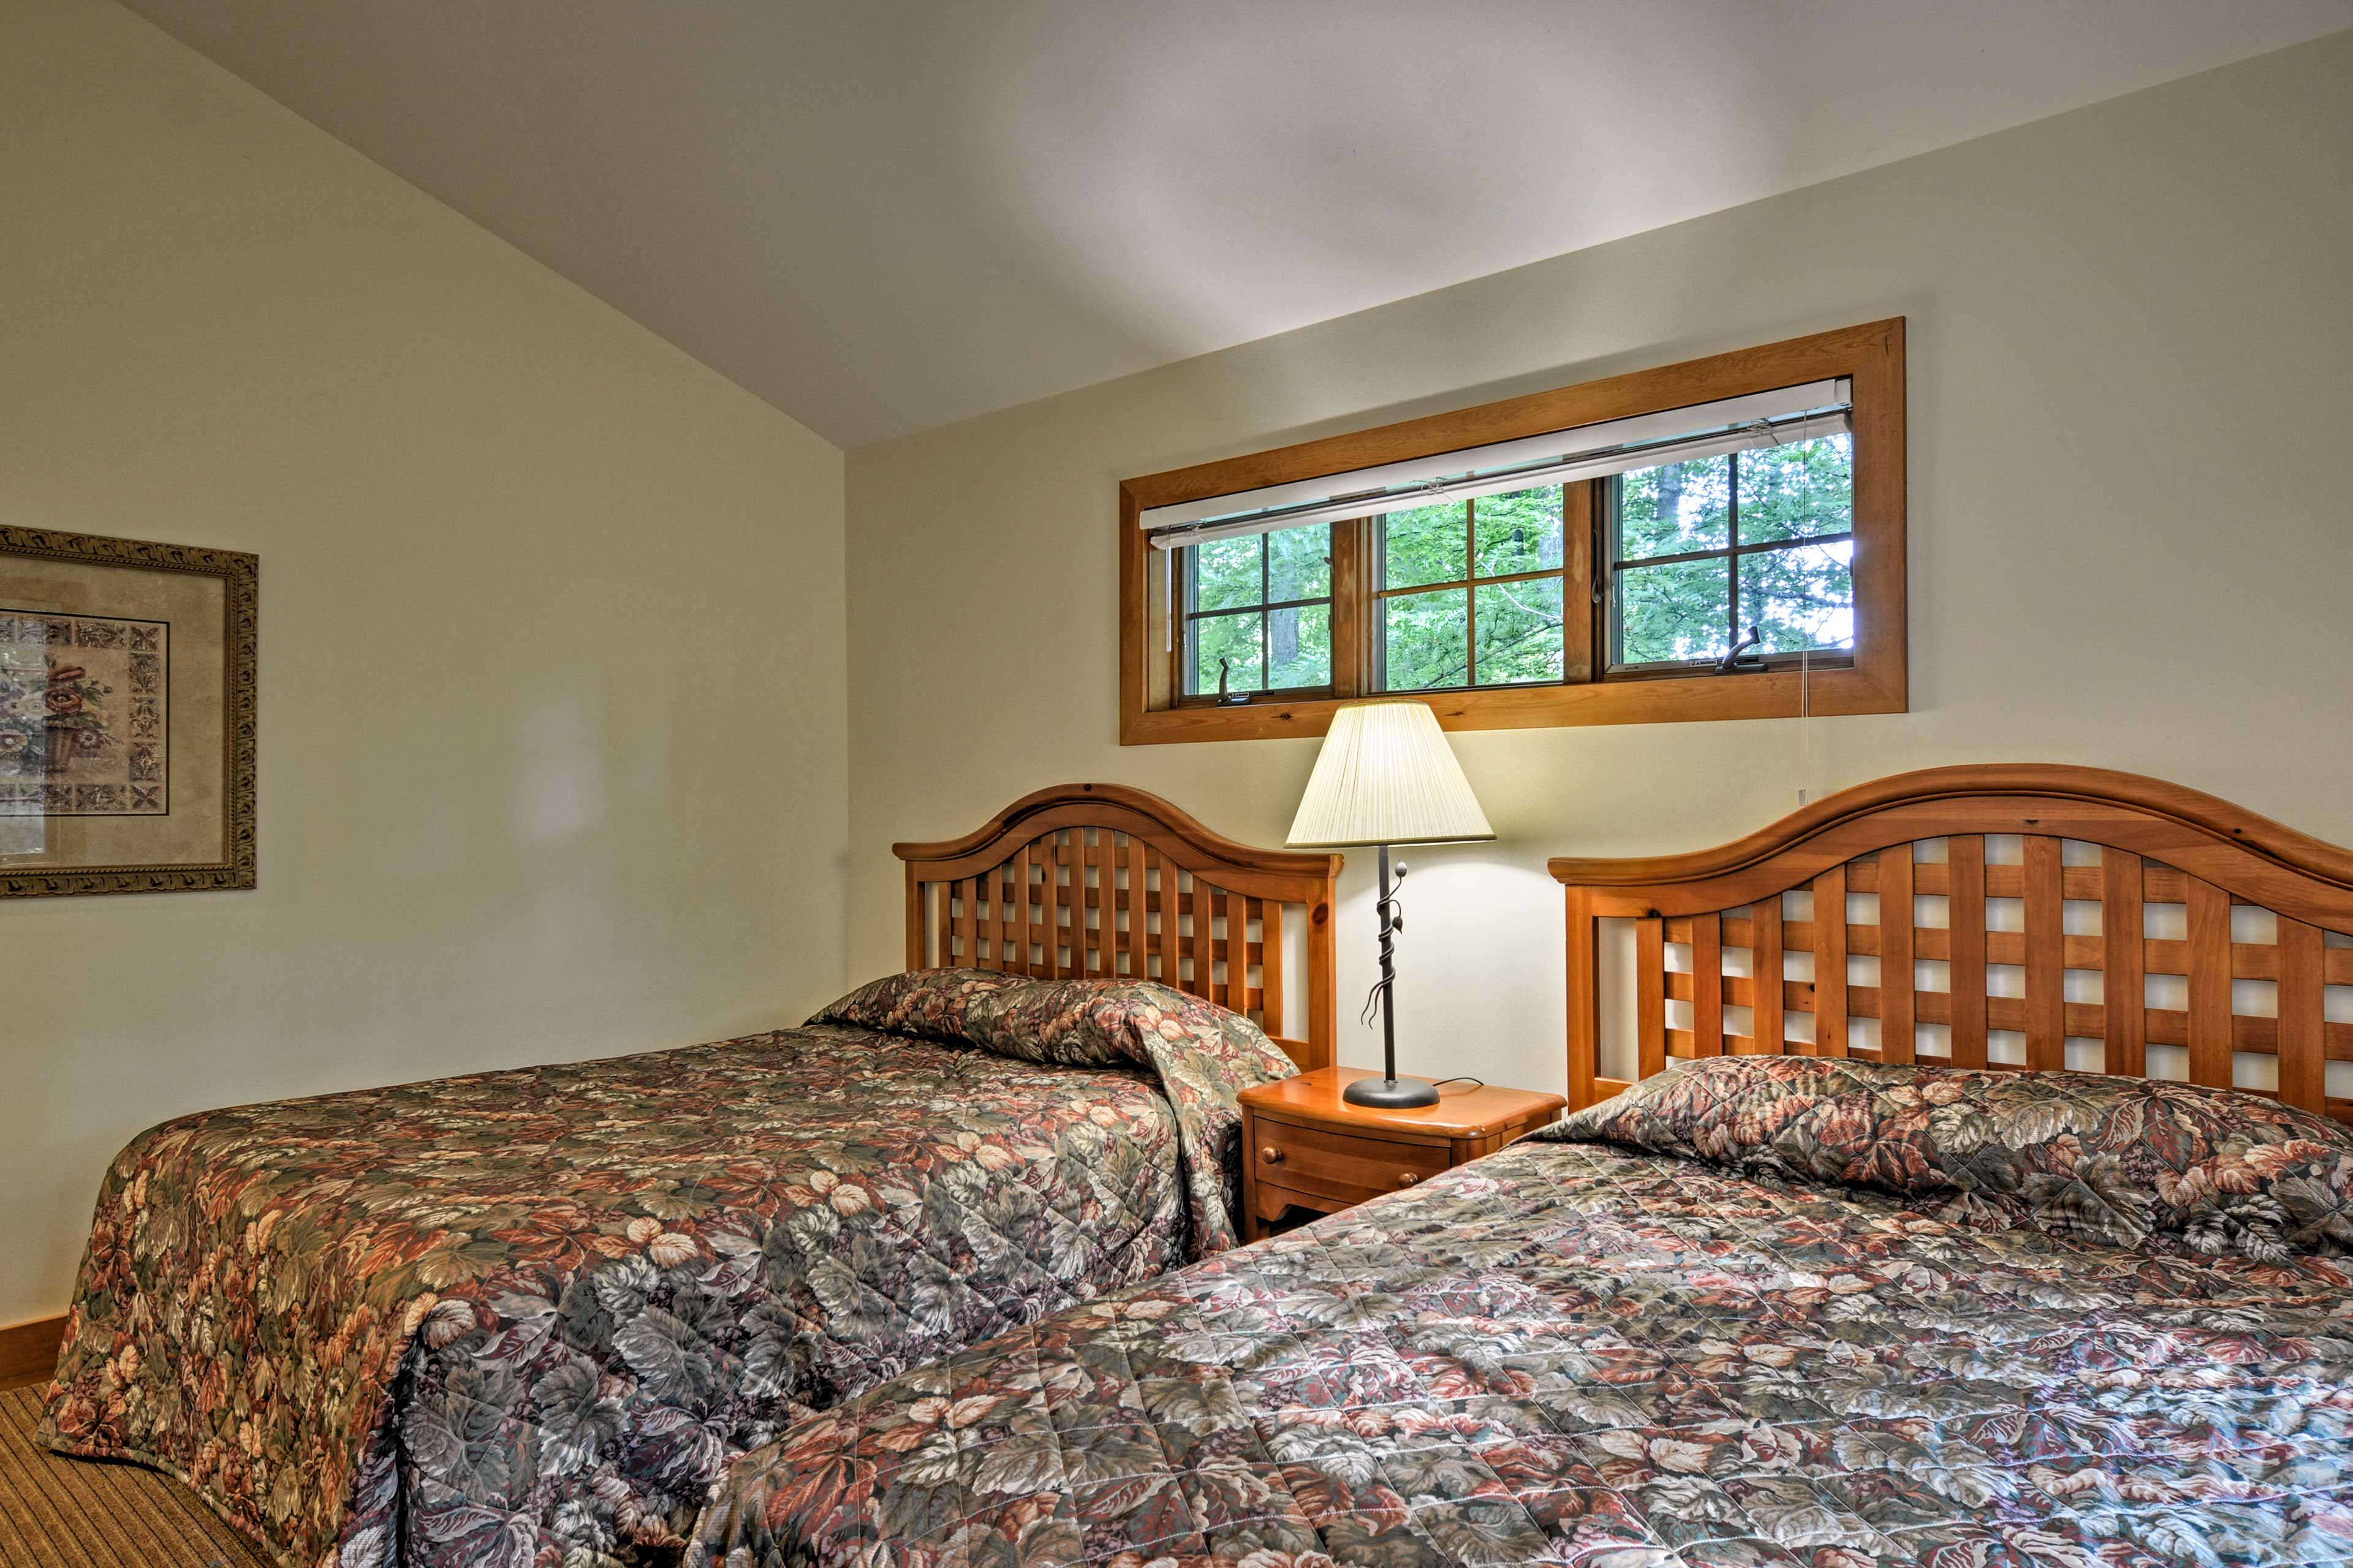 Multiple vacationers can peacefully sleep in these 2 queen-sized beds.